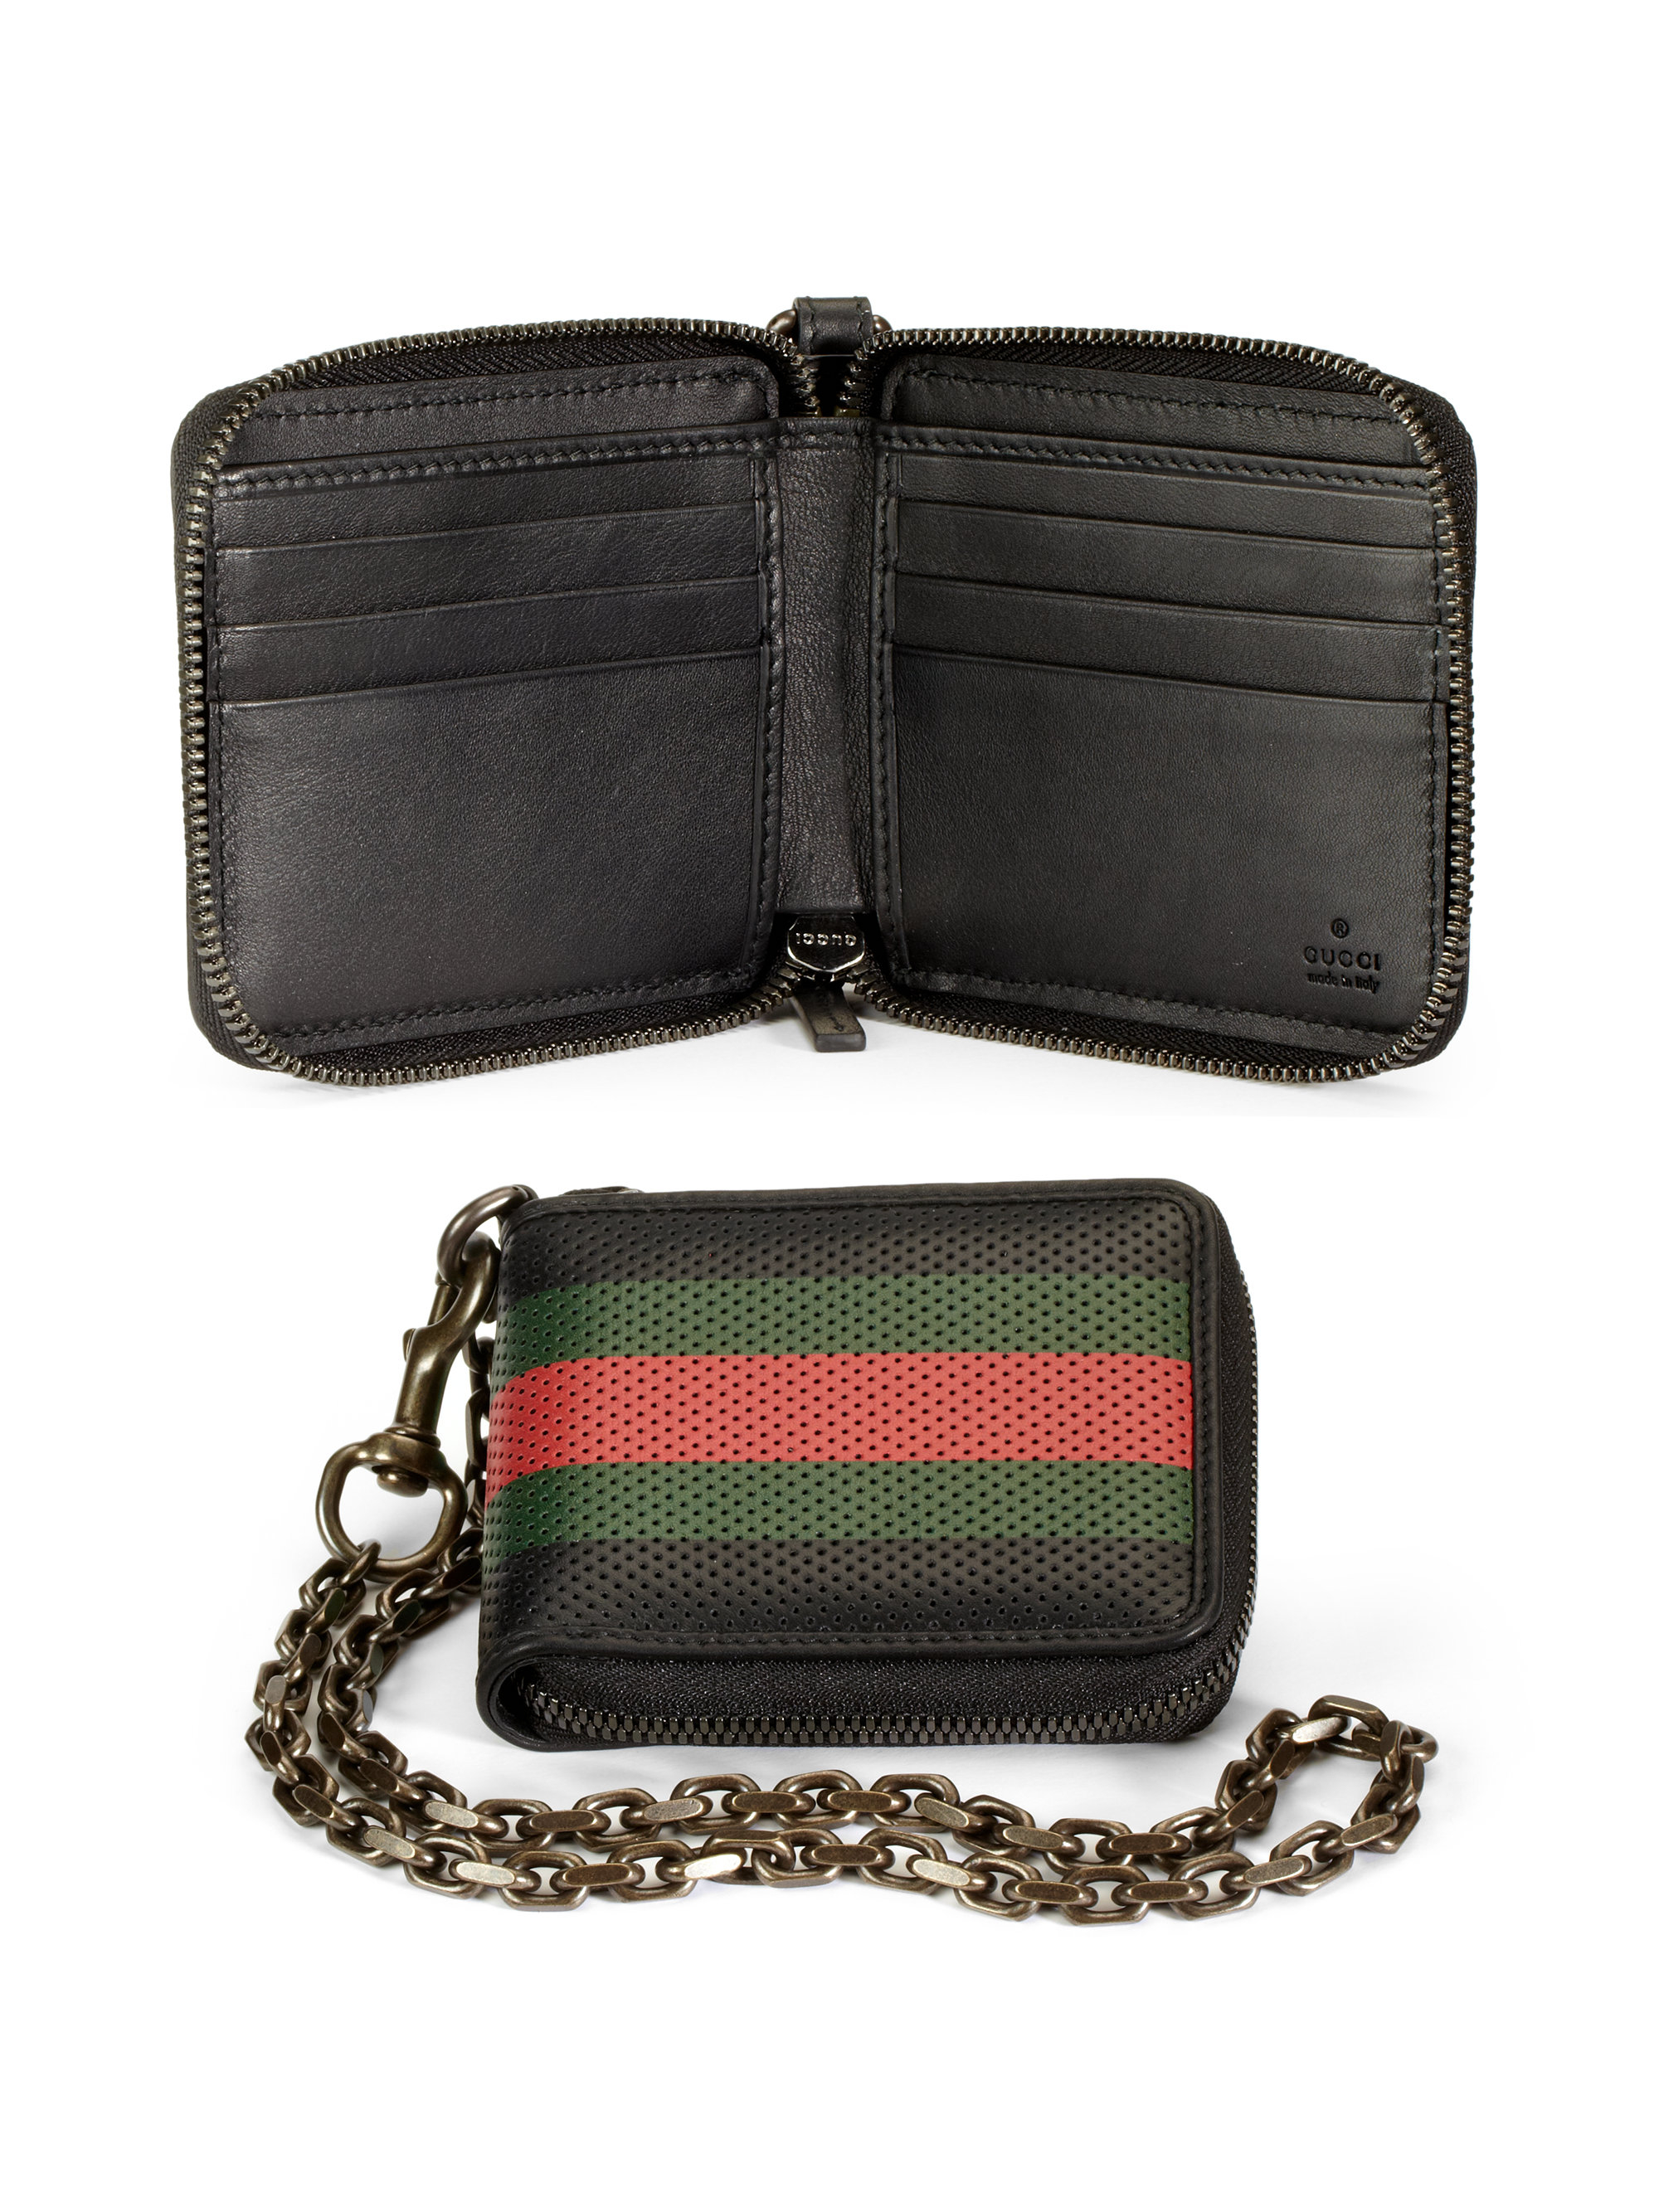 Lyst - Gucci Perforated Leather Web Chain Wallet in Black ...